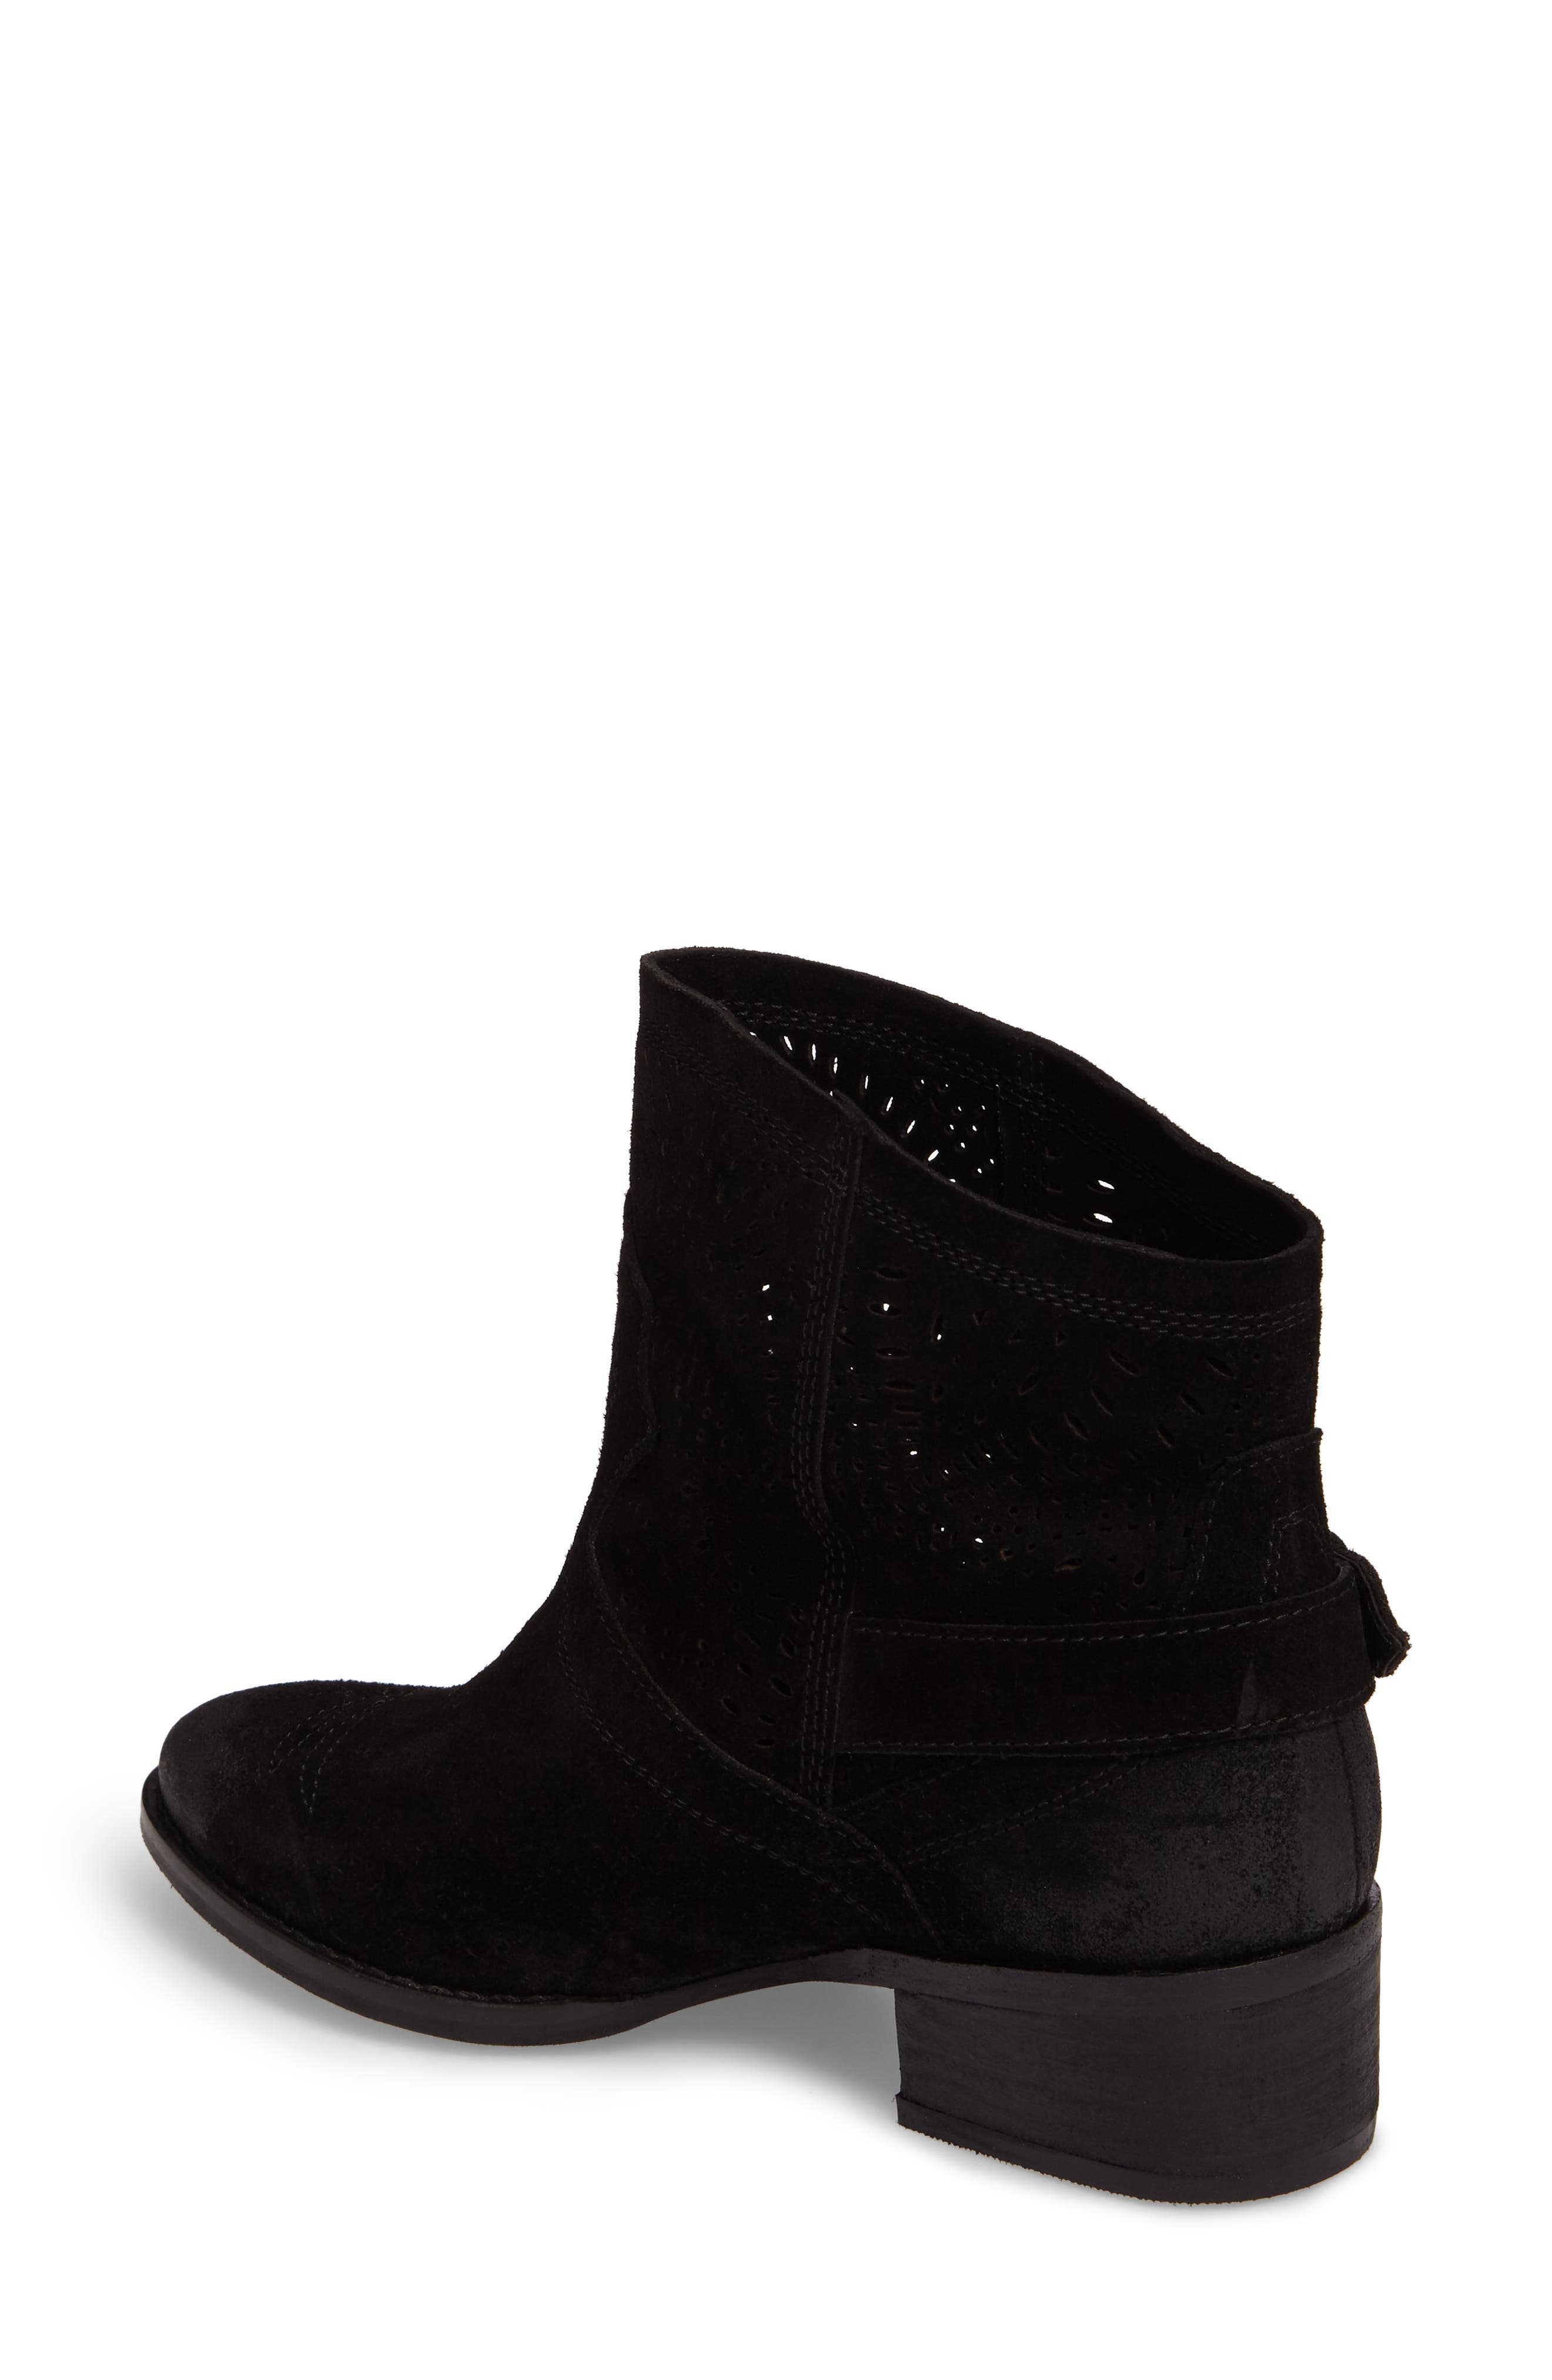 Zoey Perforated Bootie,                             Alternate thumbnail 2, color,                             001